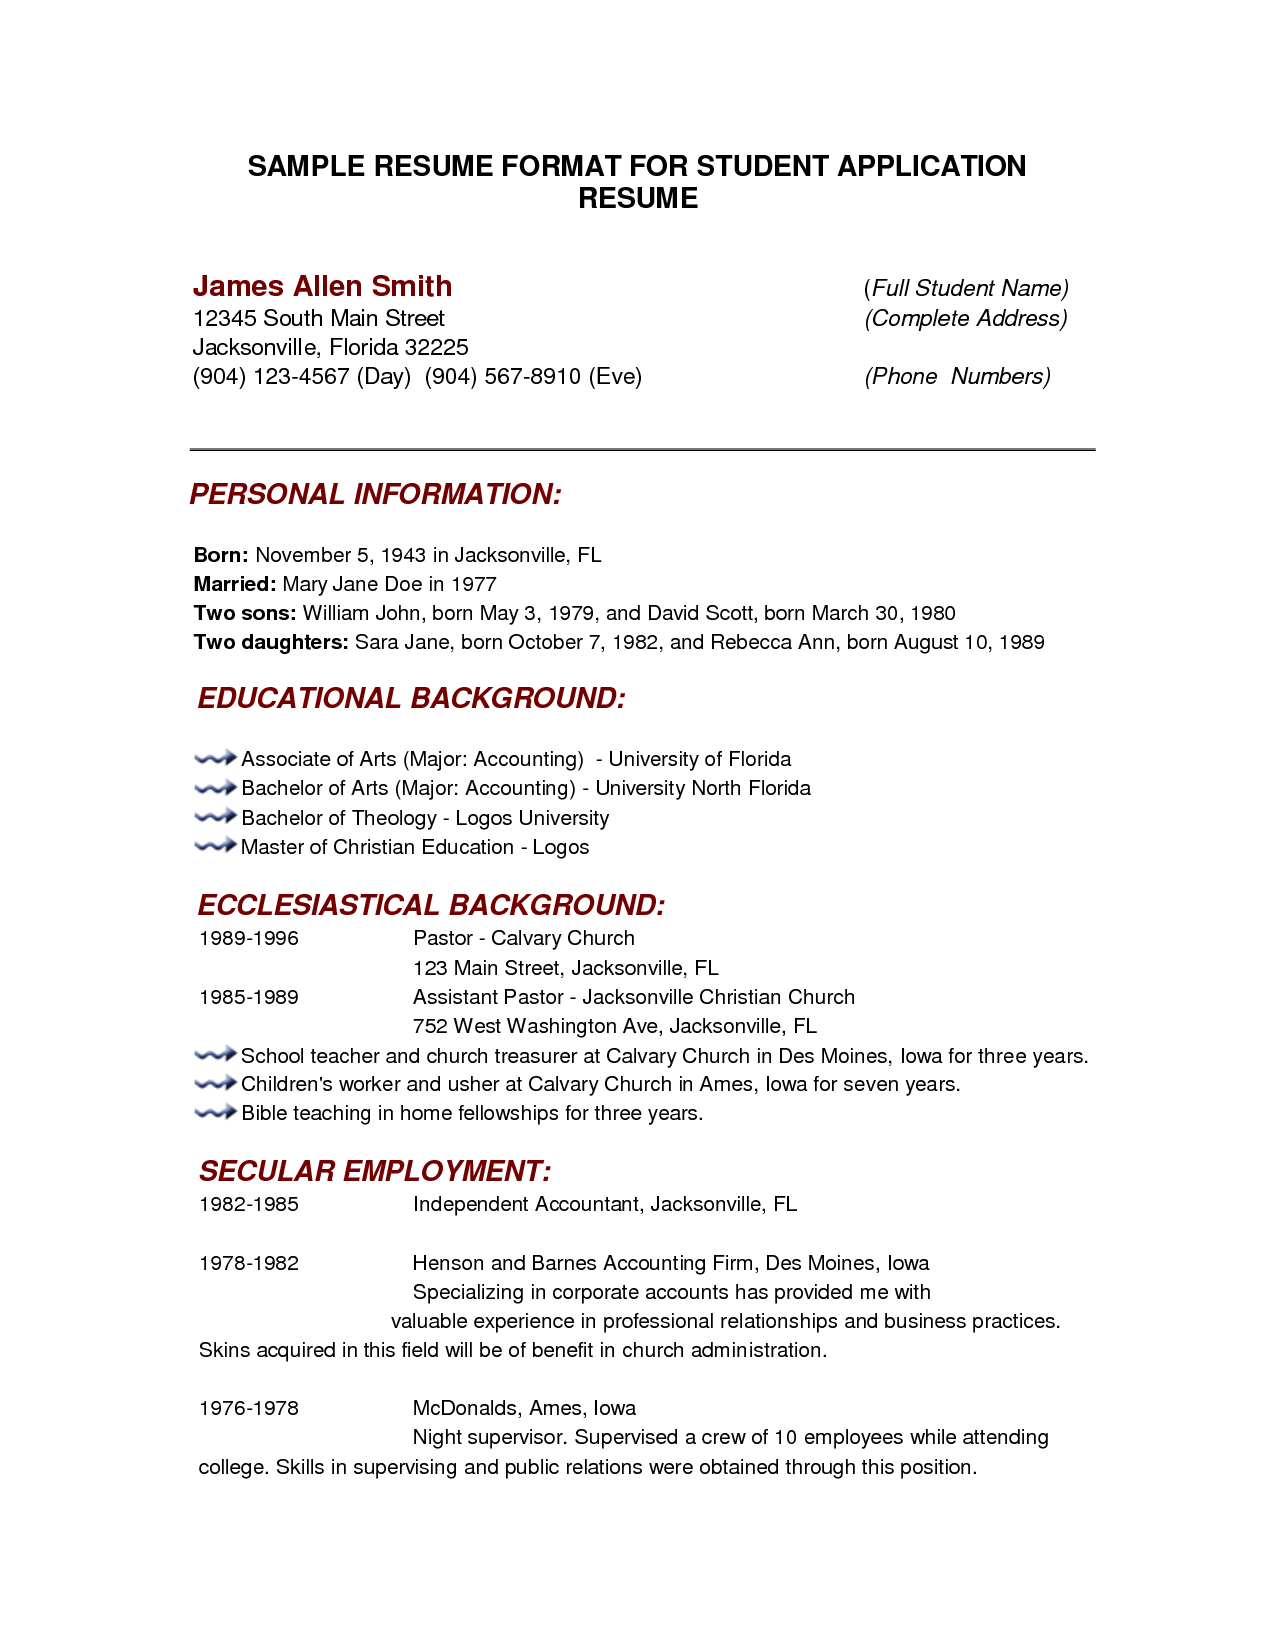 Full Block Resume Format Style For Business Letter Examples Basic Template  Free Samples  Basic Resume Examples For Students